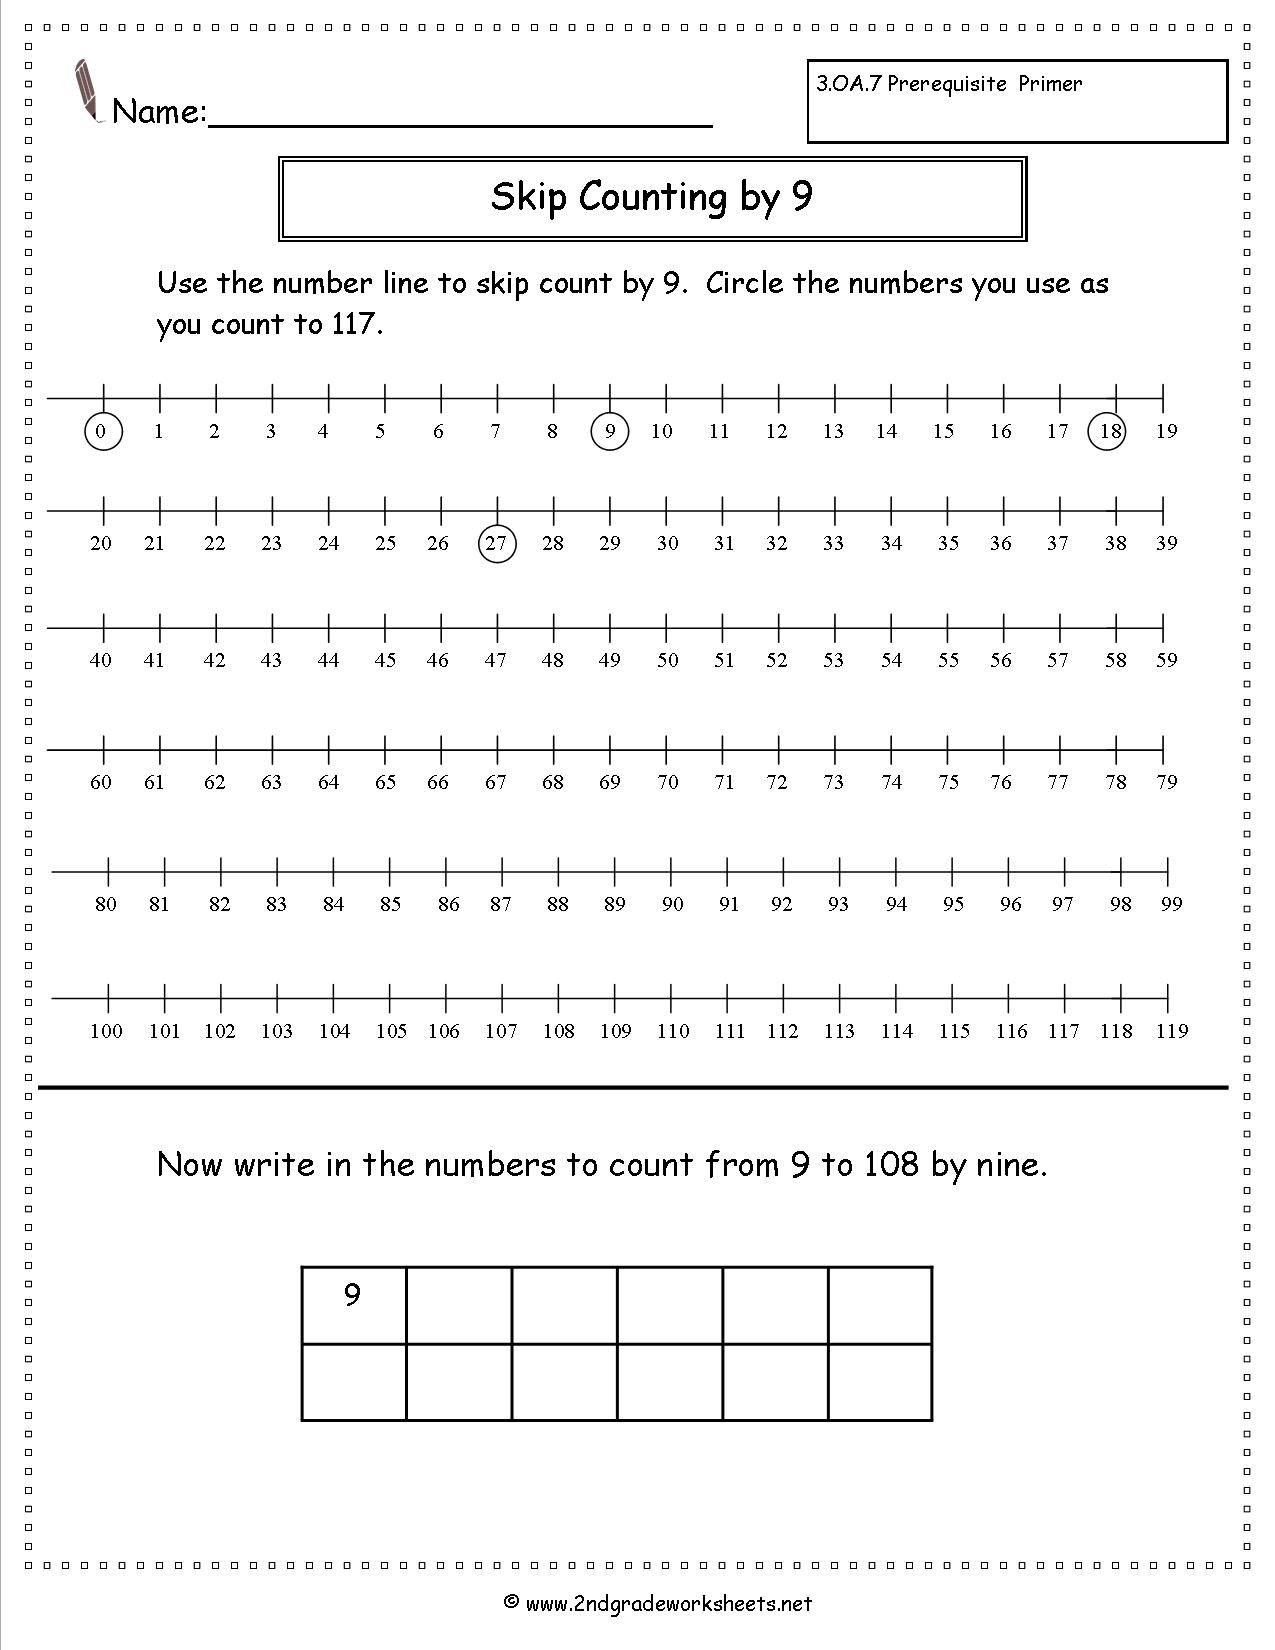 Skip Counting Worksheets 2nd Grade Free Skip Counting Worksheets Multiple Styles All Single